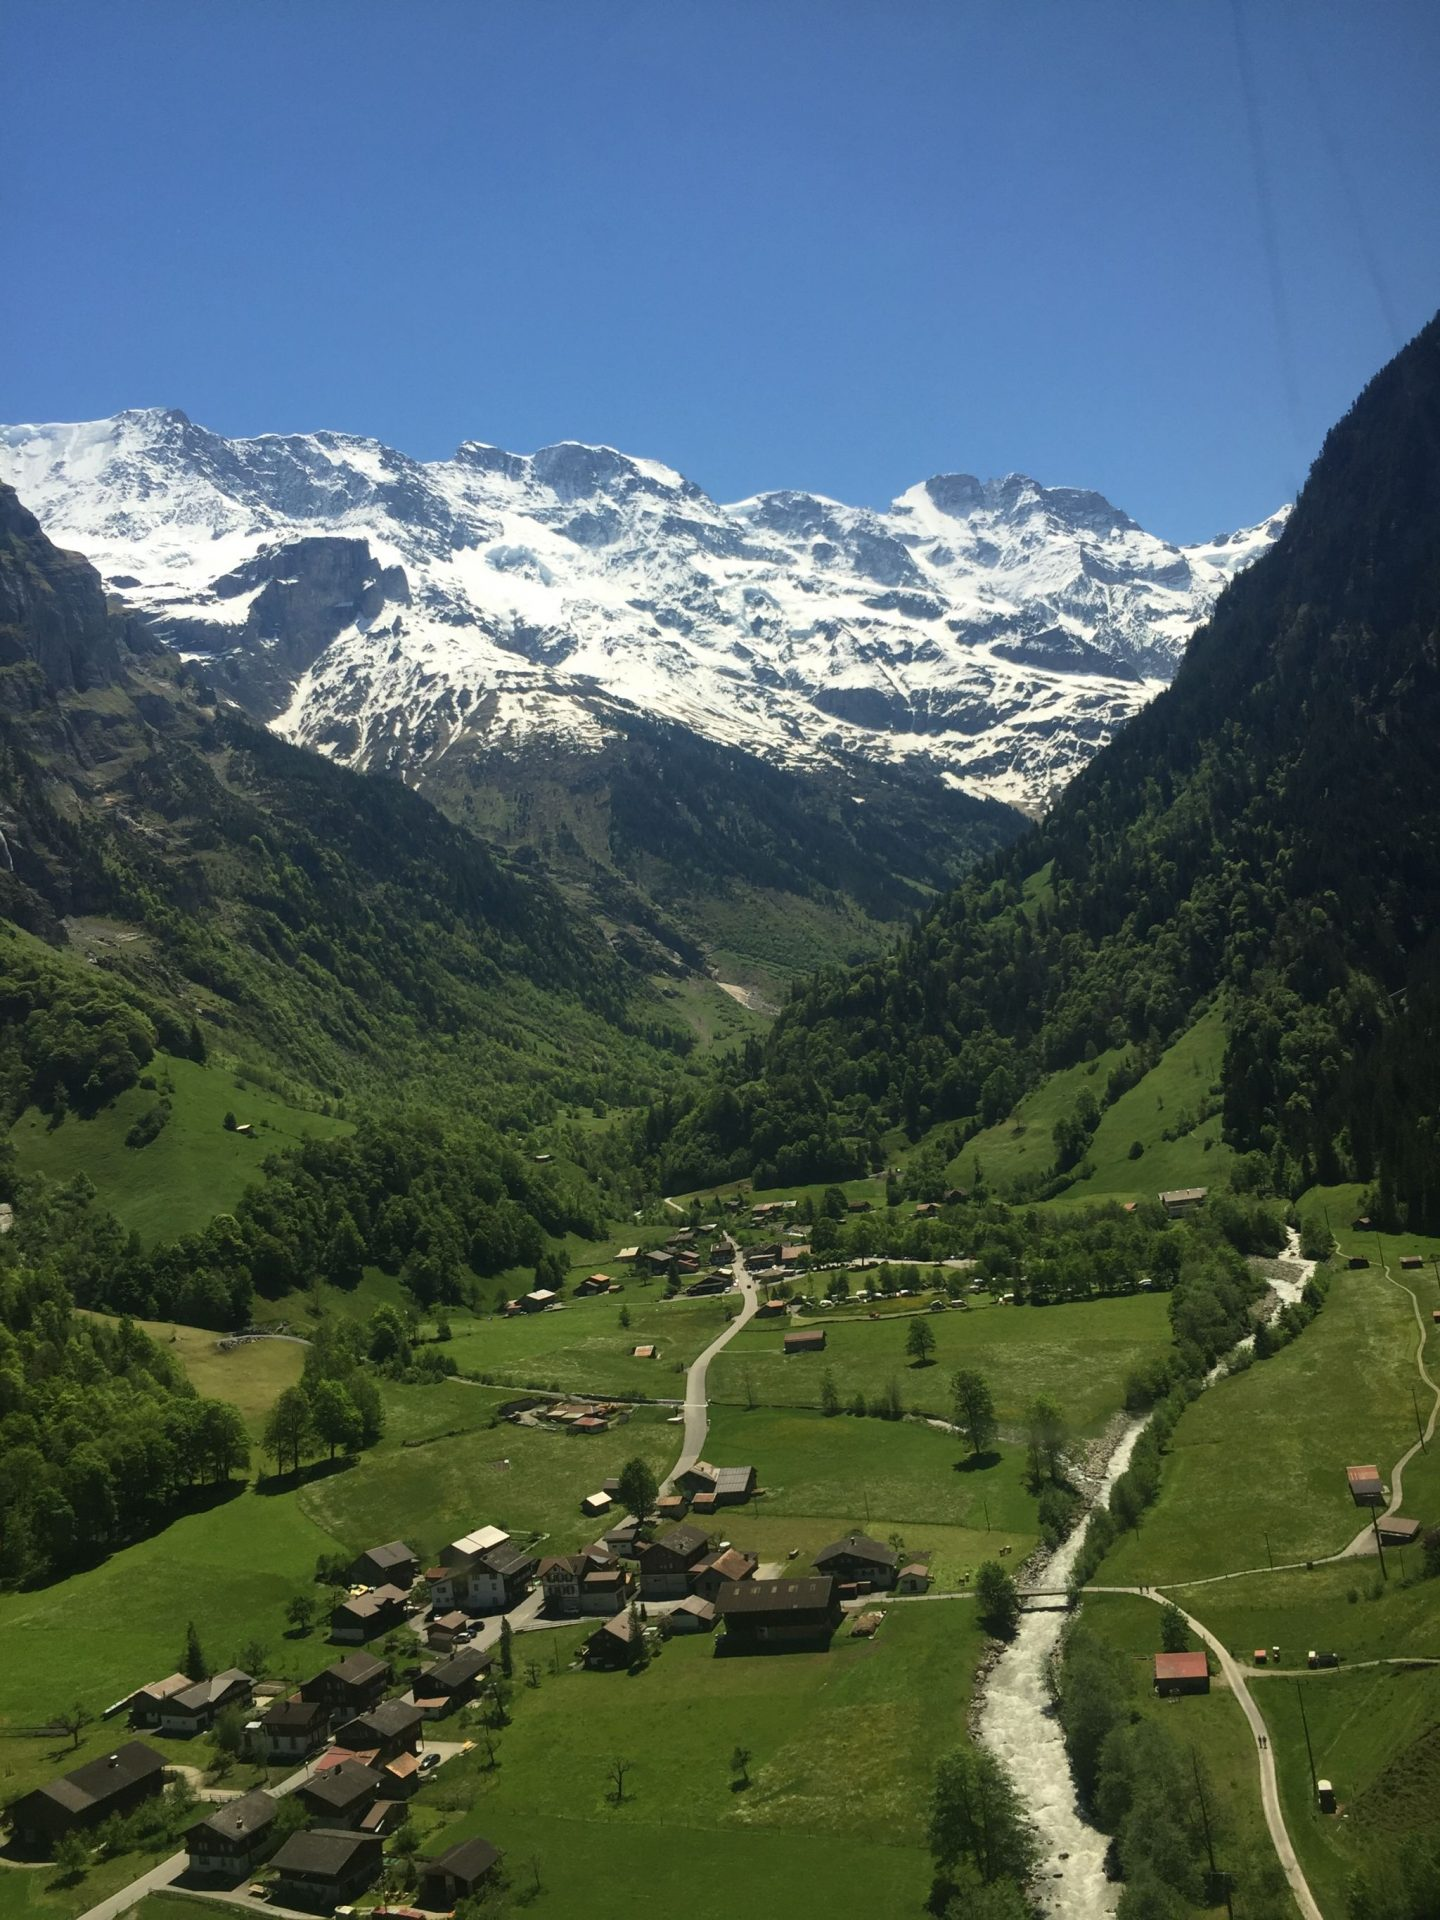 Swiss alps and green meadows